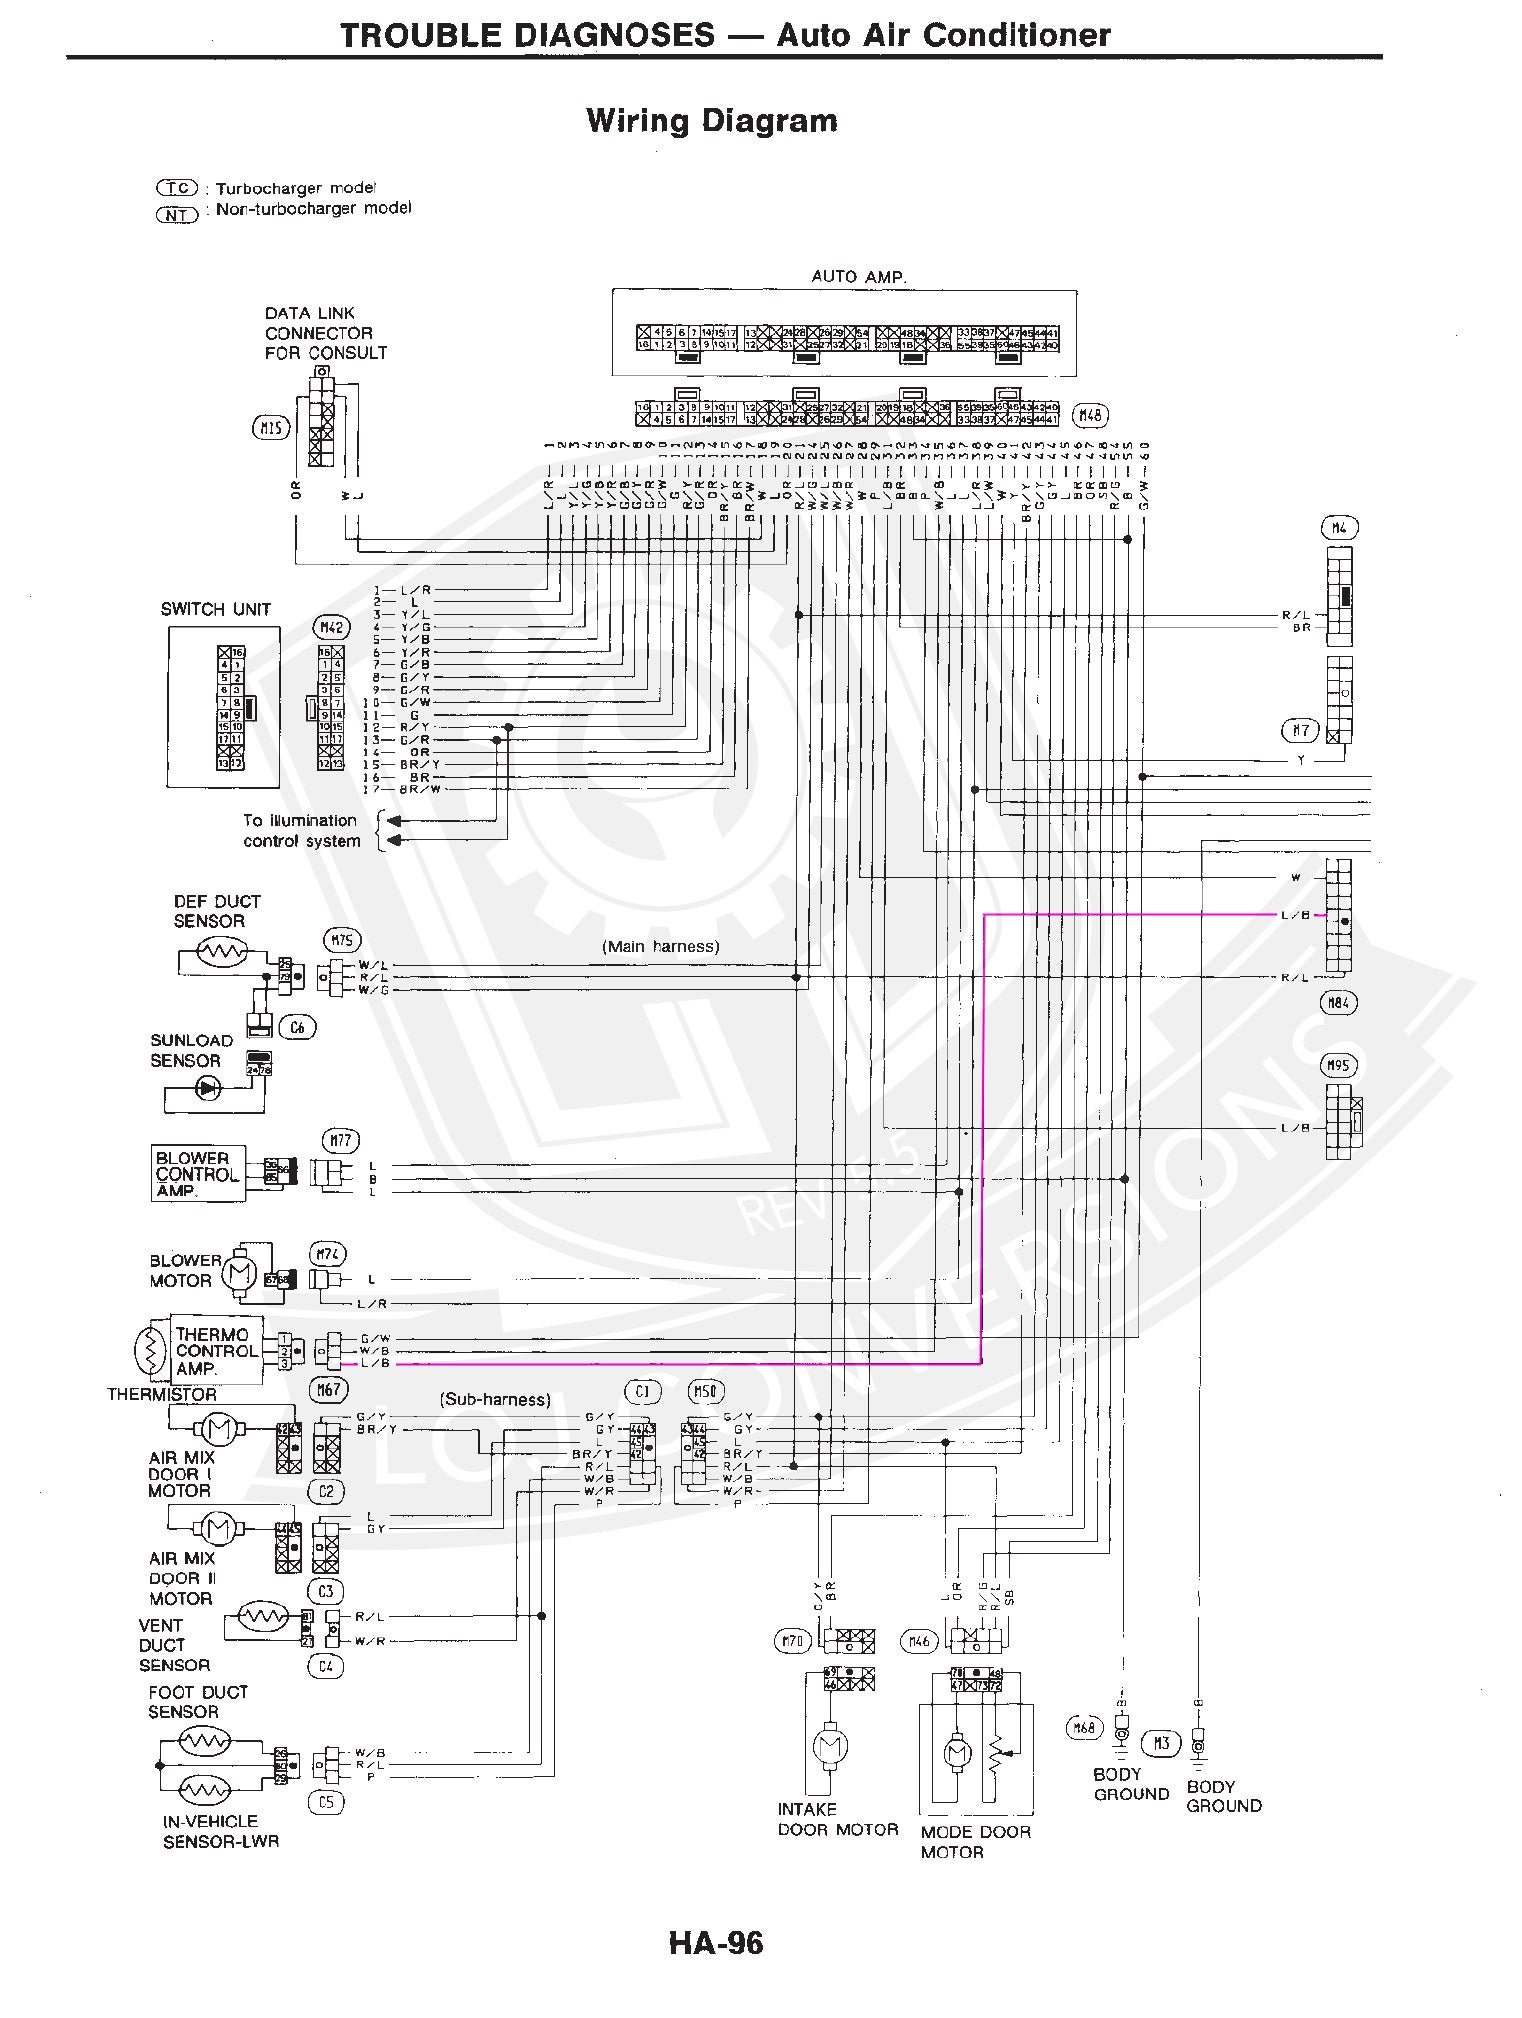 86 nissan 300zx wiring diagram wiring library 1990 nissan 300zx radio diagram 300zx ac diagram opinions about wiring diagram \\u2022 1986 nissan maxima wiring diagram 1986 nissan